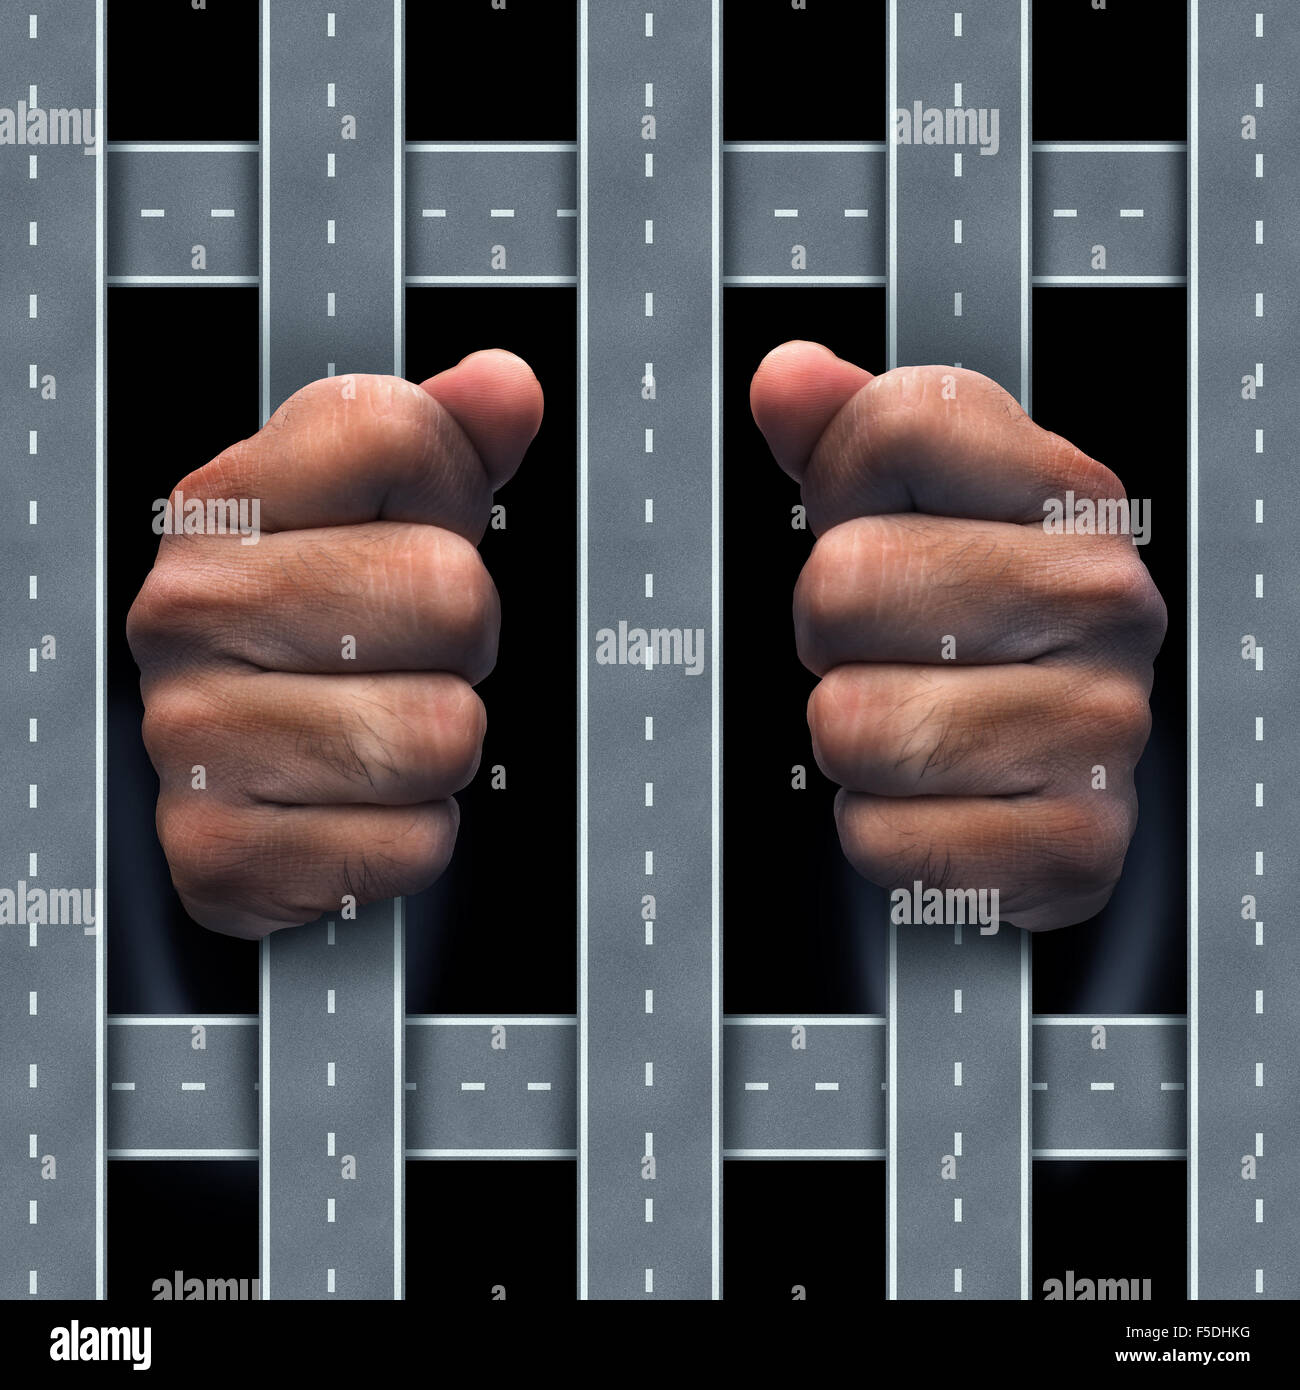 Moving violation concept as a traffic infraction or auromobile dependency symbol as human hands behind bars made - Stock Image